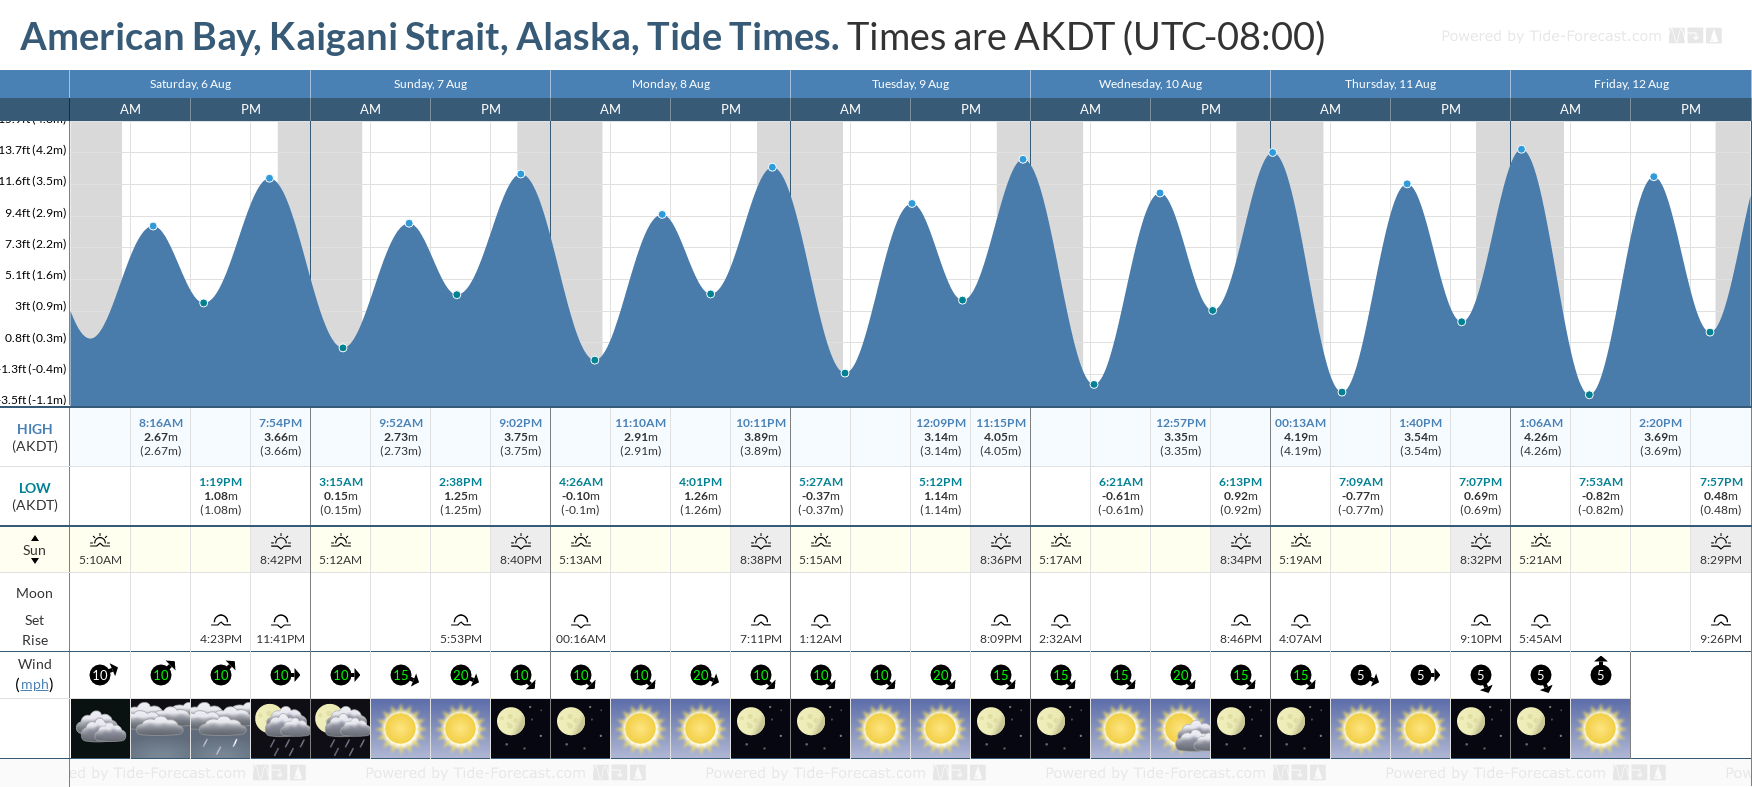 American Bay, Kaigani Strait, Alaska Tide Chart including high and low tide tide times for the next 7 days